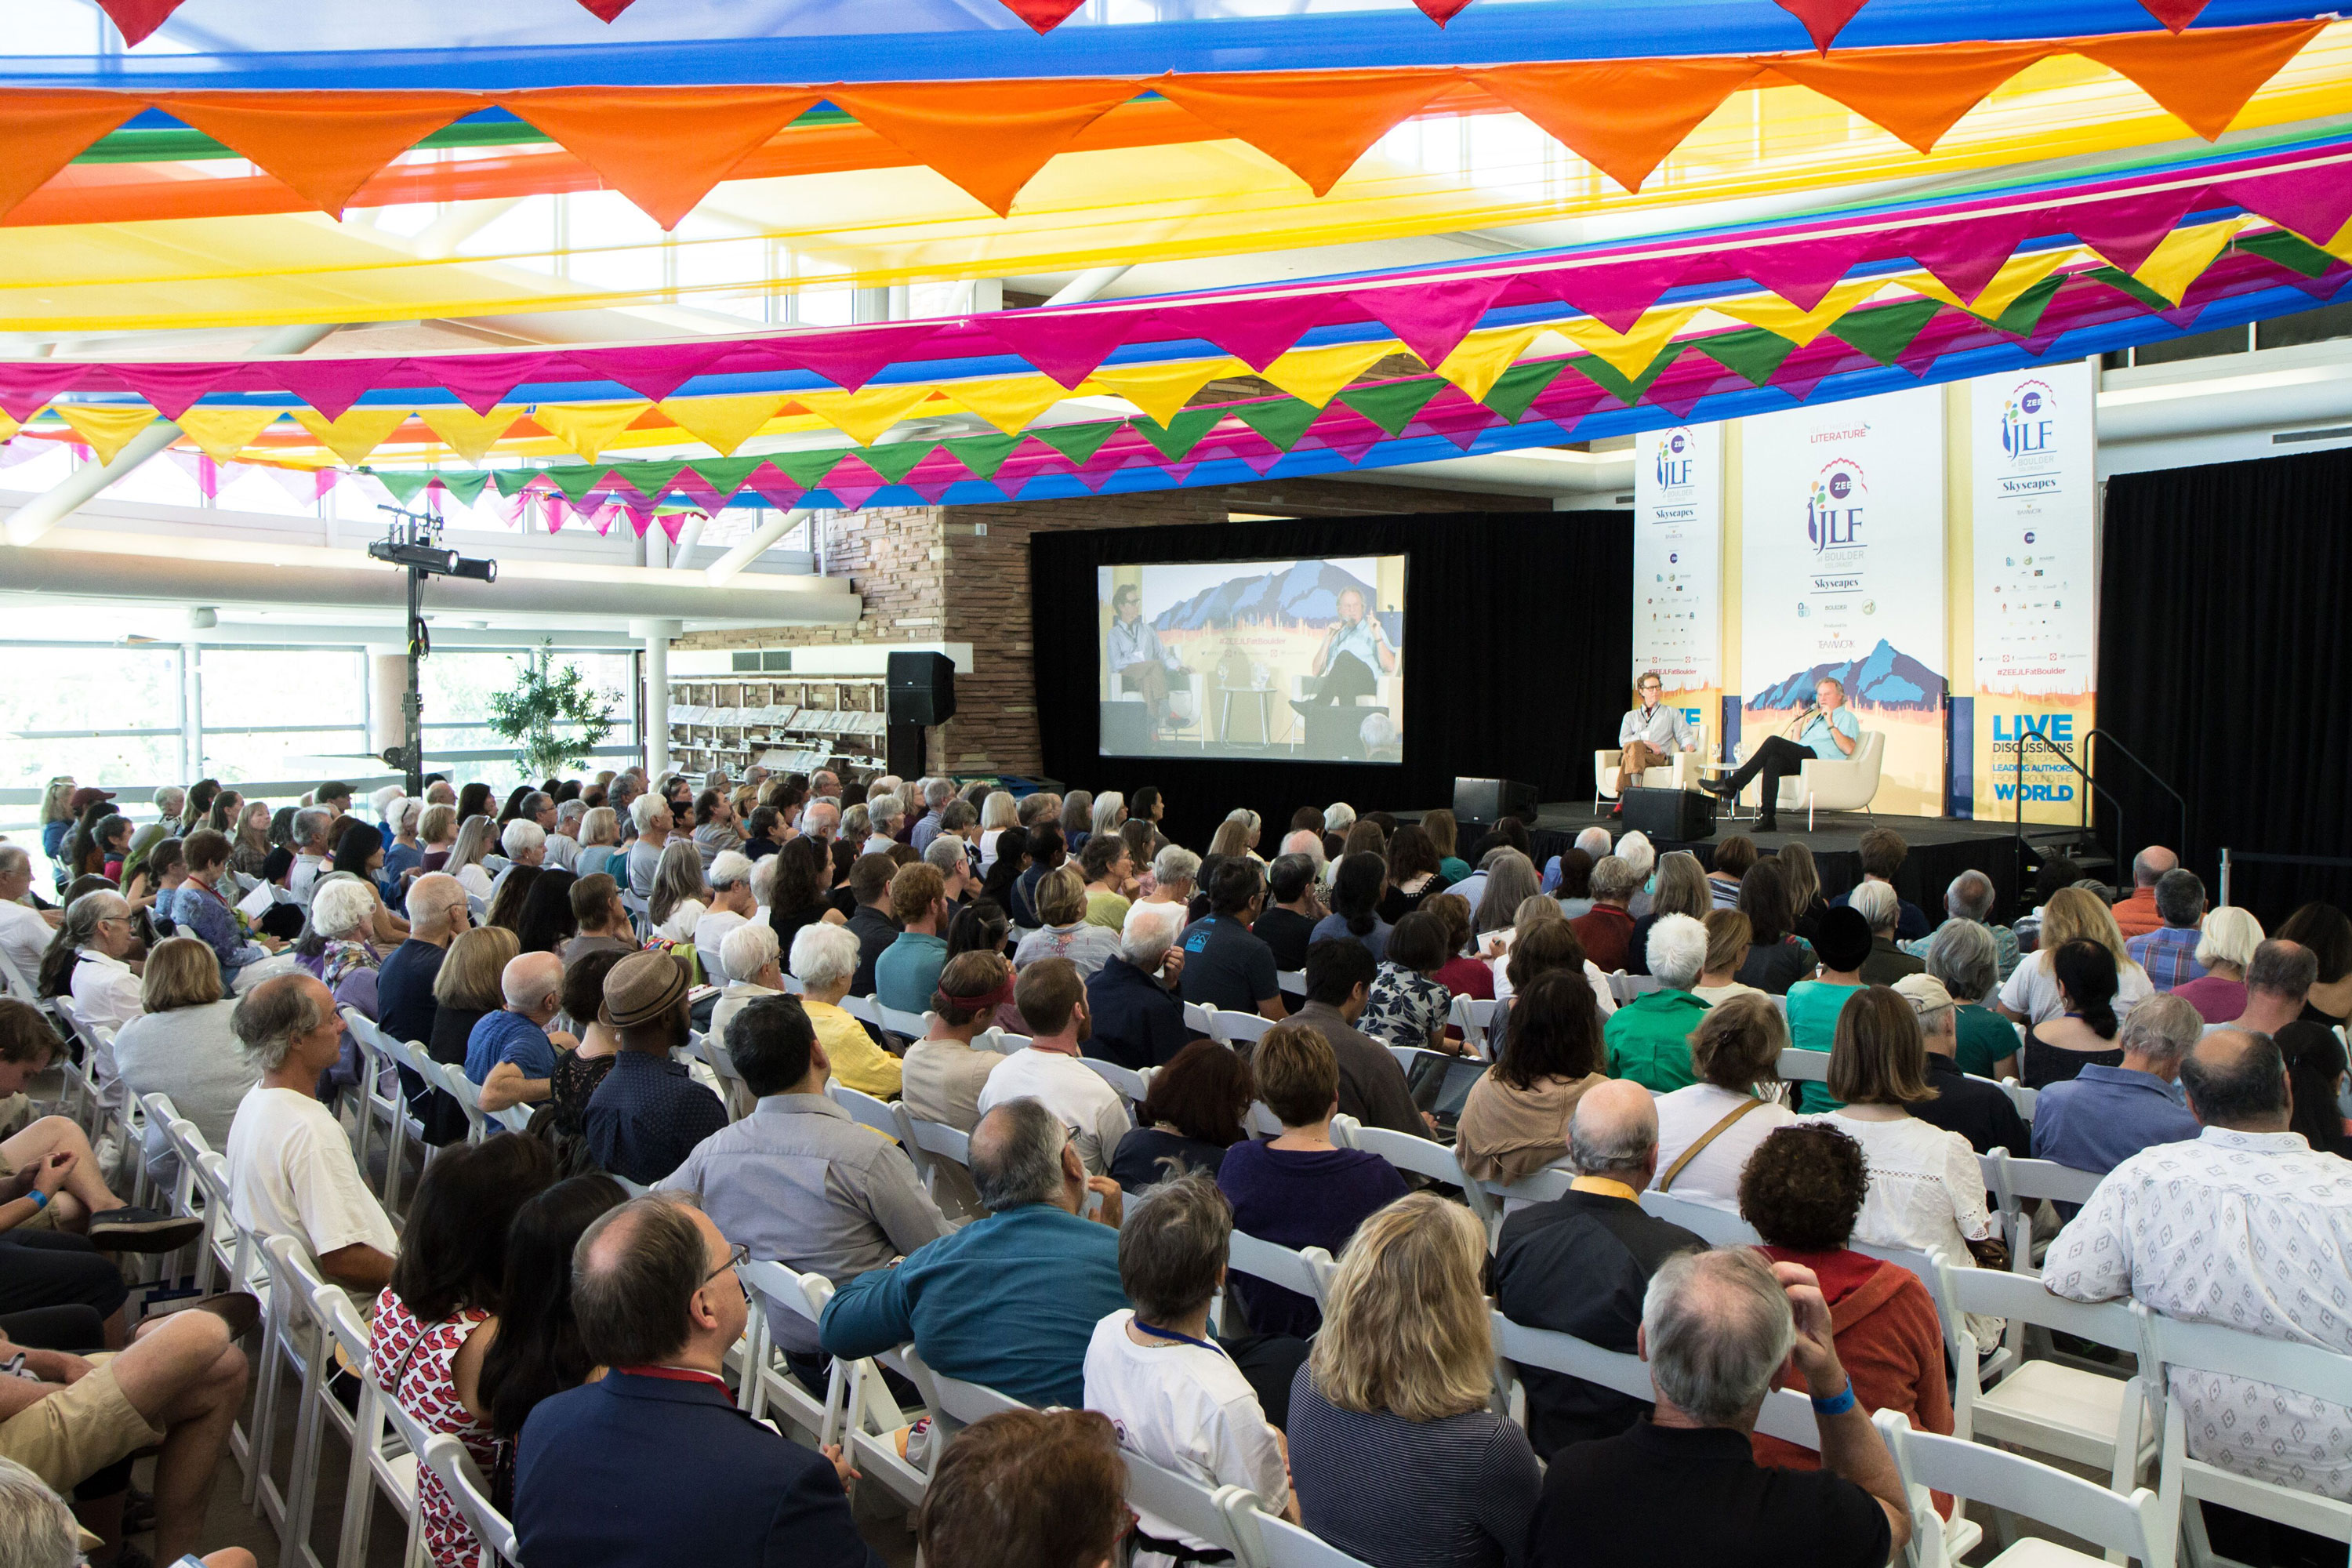 A scene from a previous year's ZEE Jaipur Literature Festival Colorado.